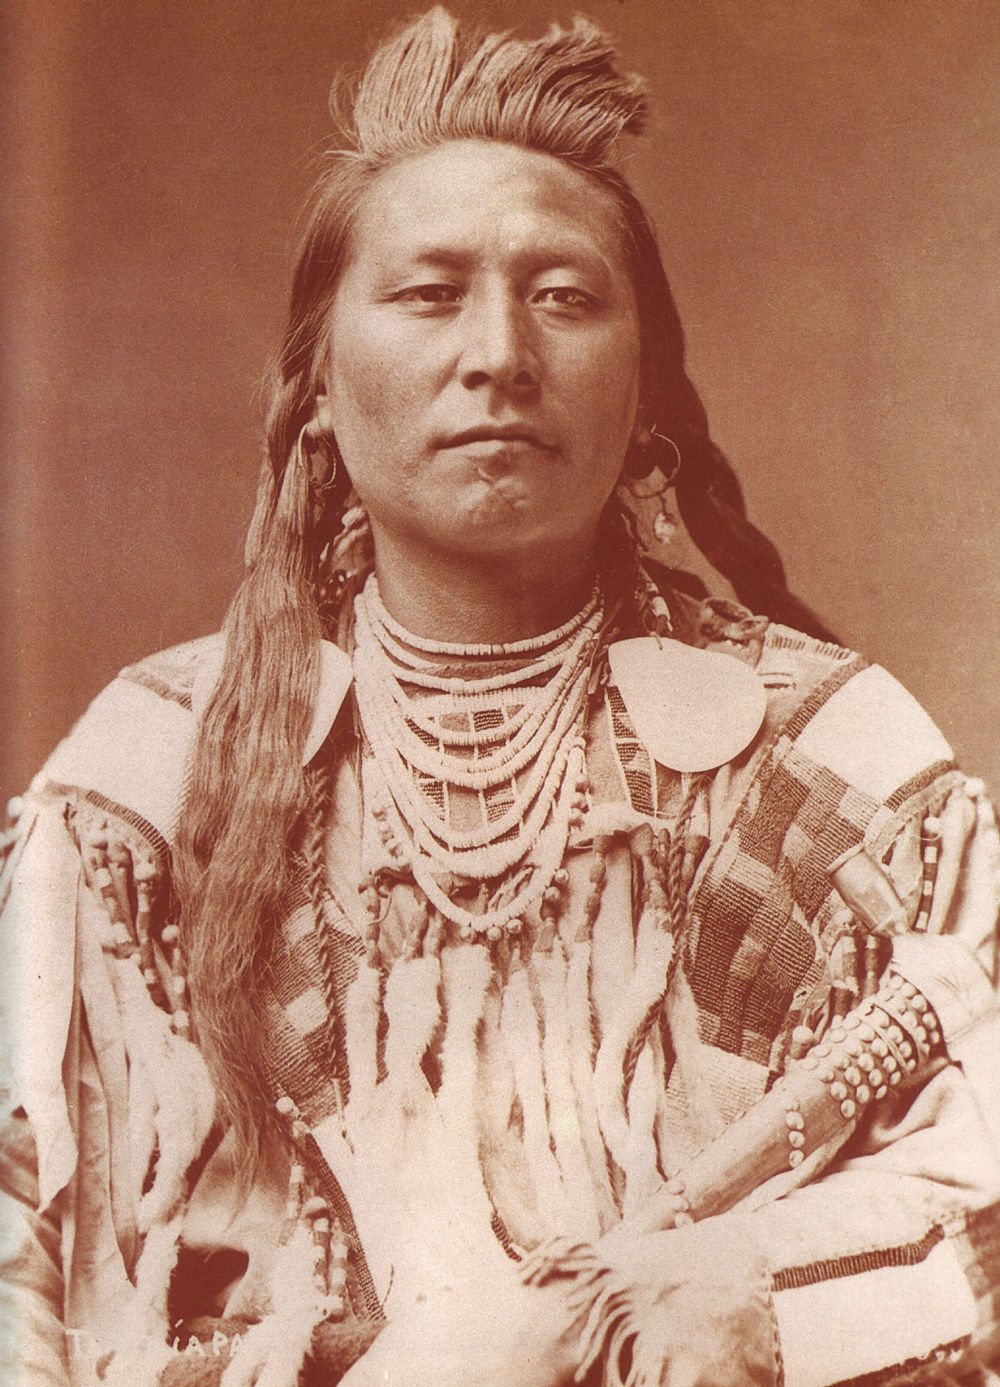 An old photograph of Plenty Coups aka Yshidiapas aka Aleek-chea-ahoosh - Crow Chief [A].